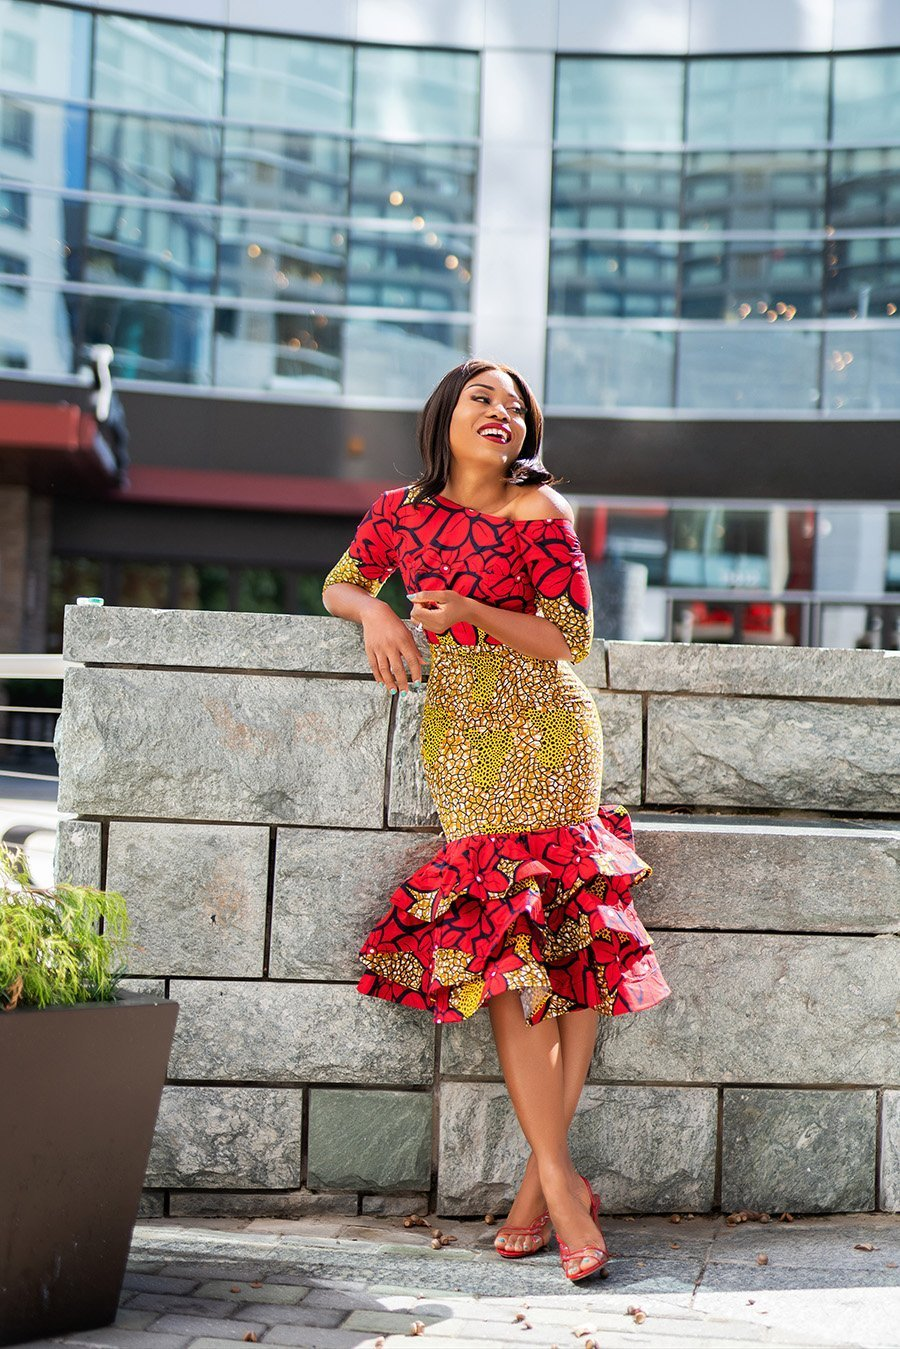 Stella-Adewunmi-of-Jadore-Fashion-shares-holiday-style-to wear-now-and-beyond